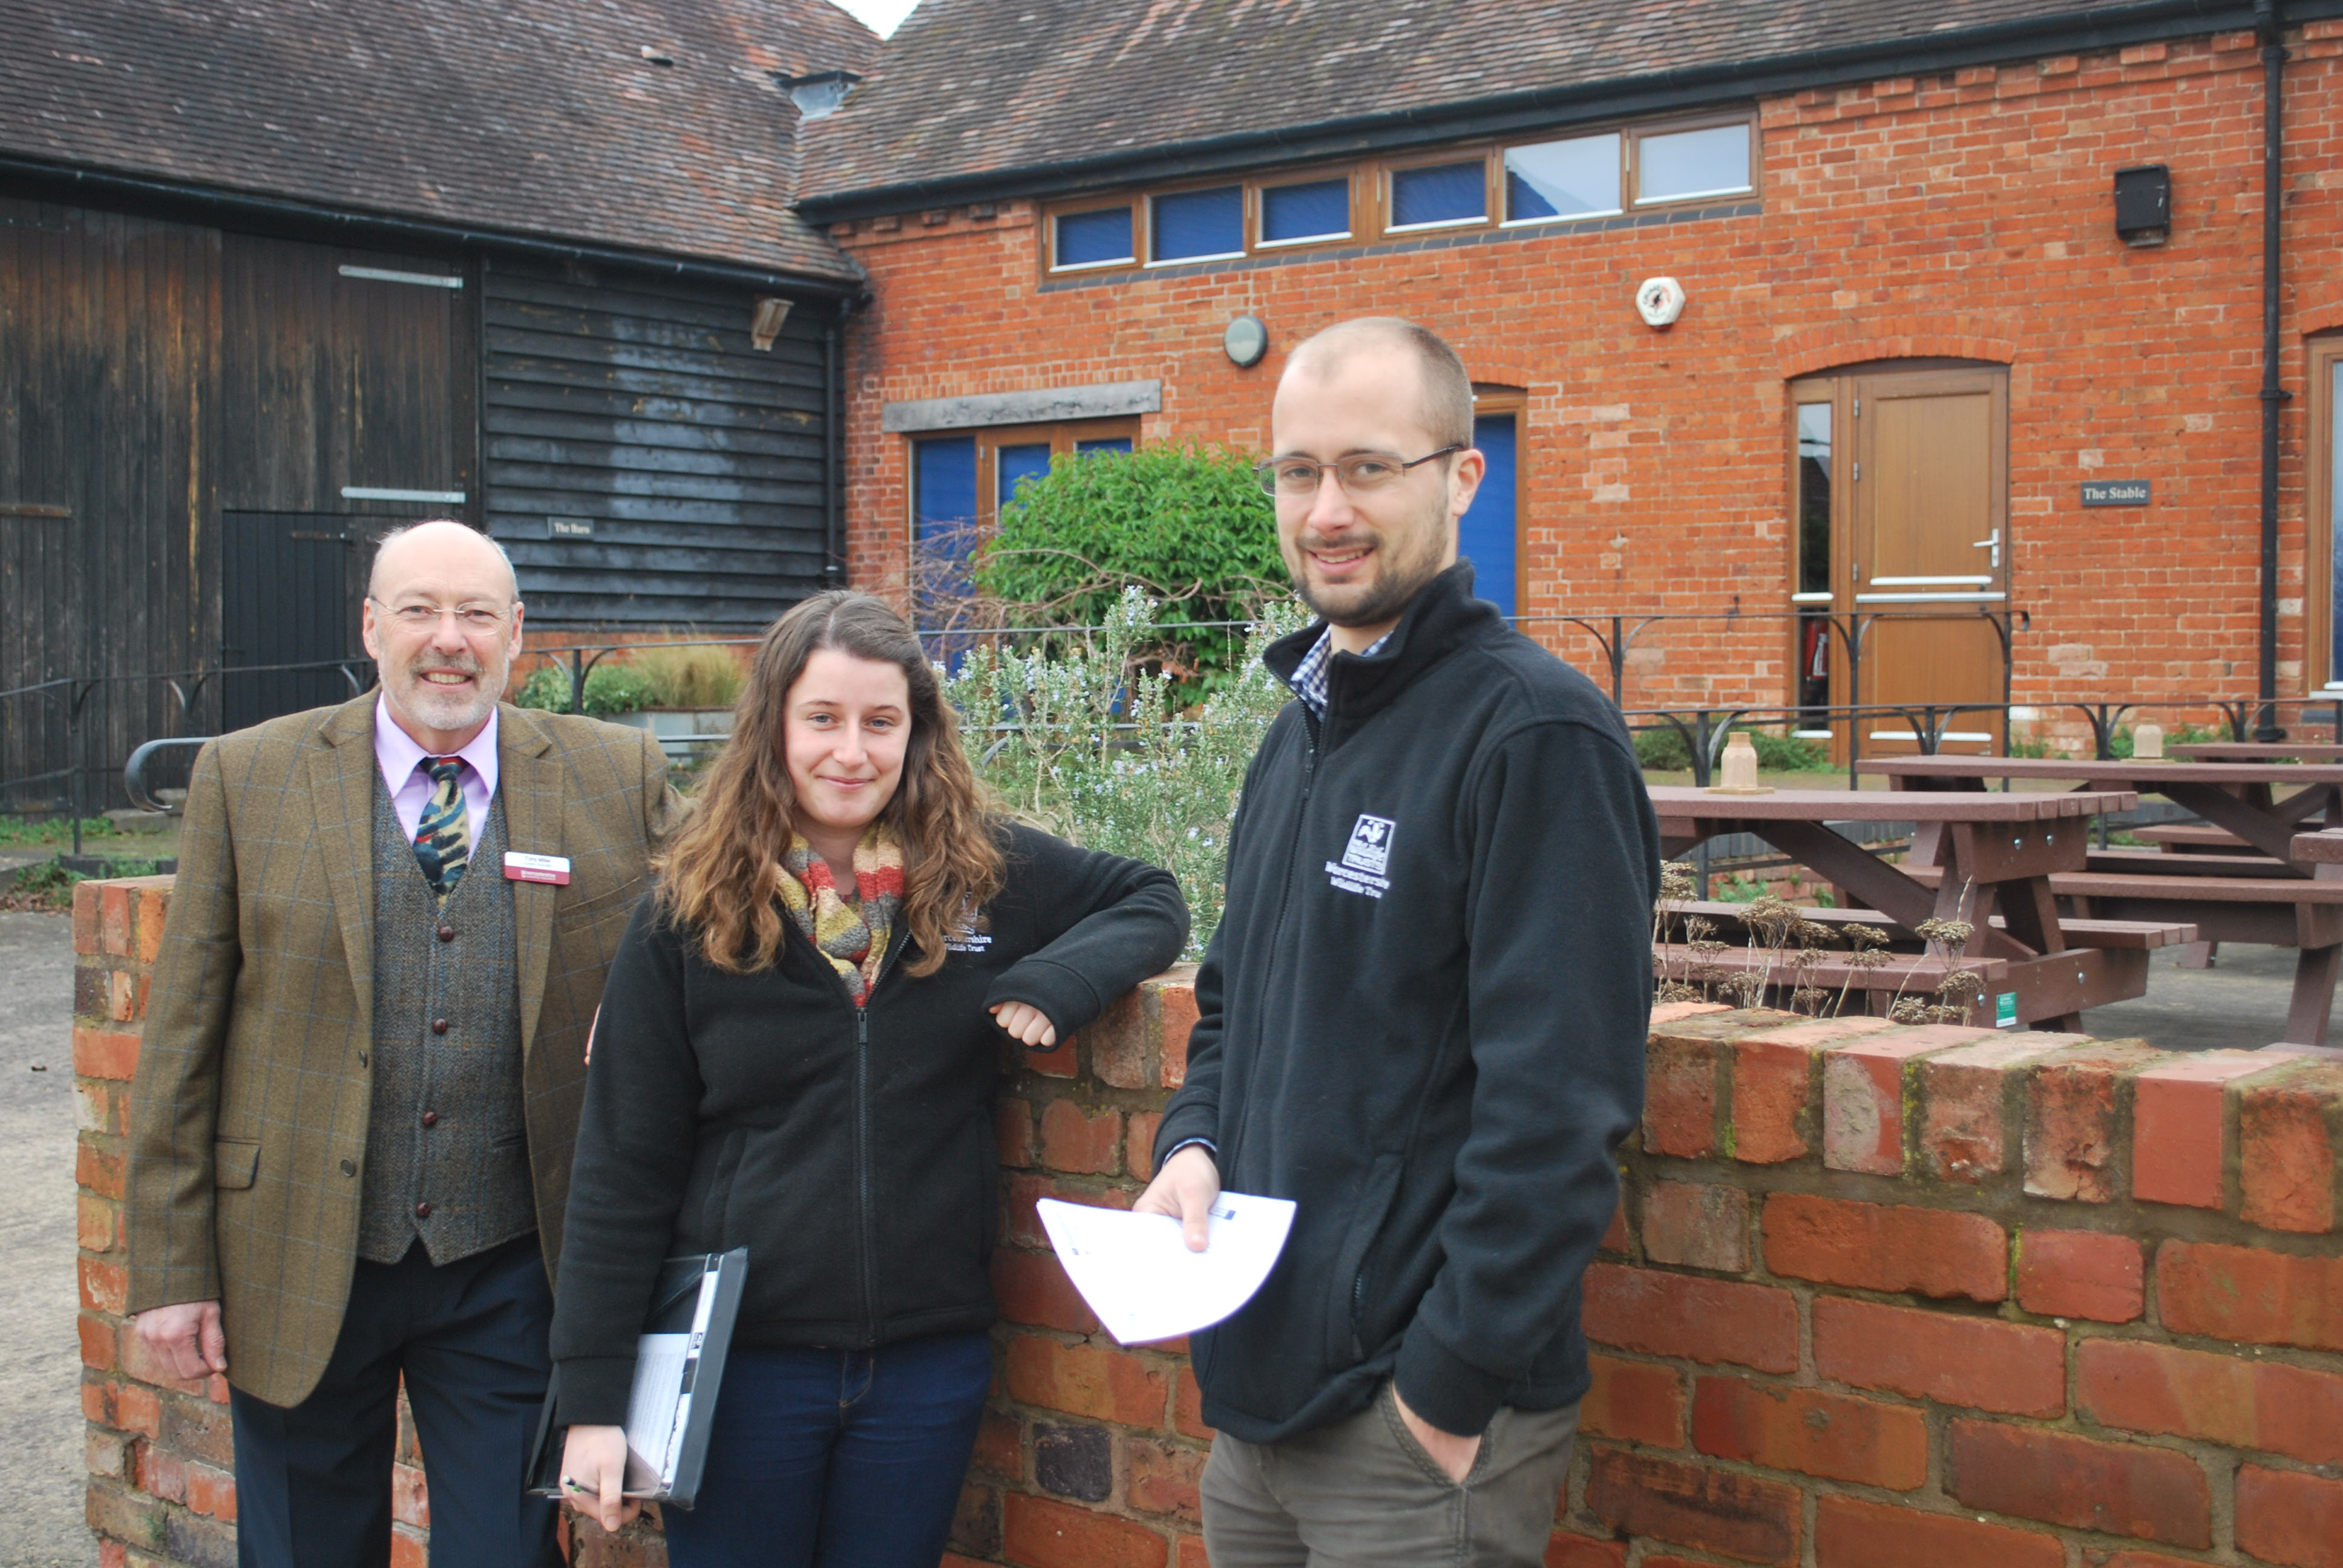 L-R) County Councillor Tony Miller  with Jasmine Walters and Sean Webber both Natural Networks Officers from Worcestershire Wildlife Trust undertaking surveys and delivering management advice and assistance with grant applications for the project.